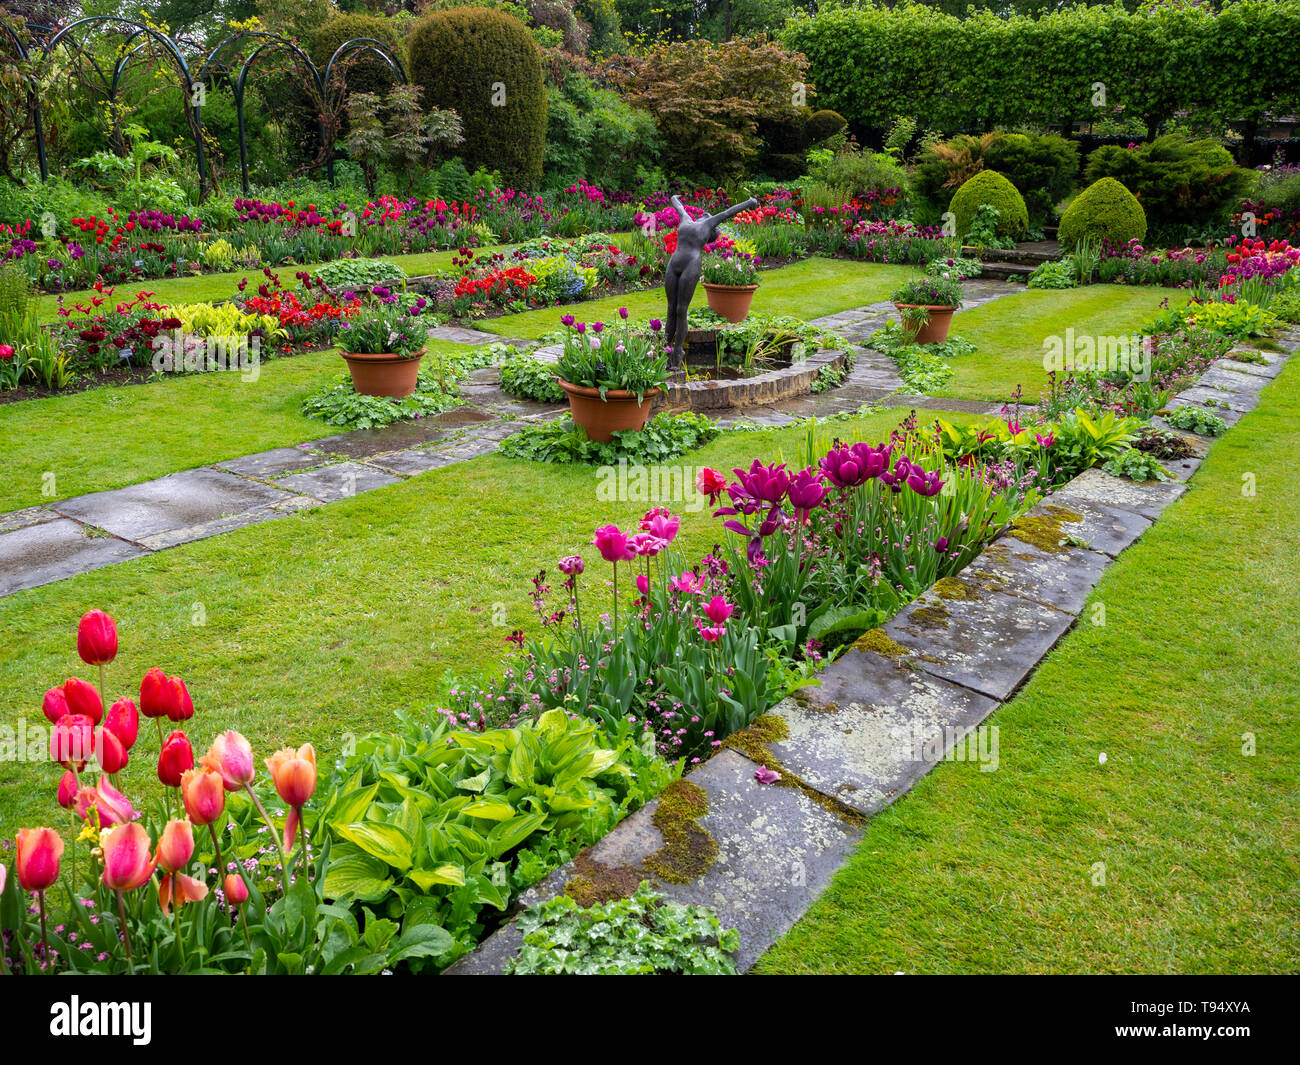 Chenies Manor House Sunken garden in May with vivid tulip varieties on a showery afternoon; plant borders, wet paving, ornamental pond and statue.. Stock Photo